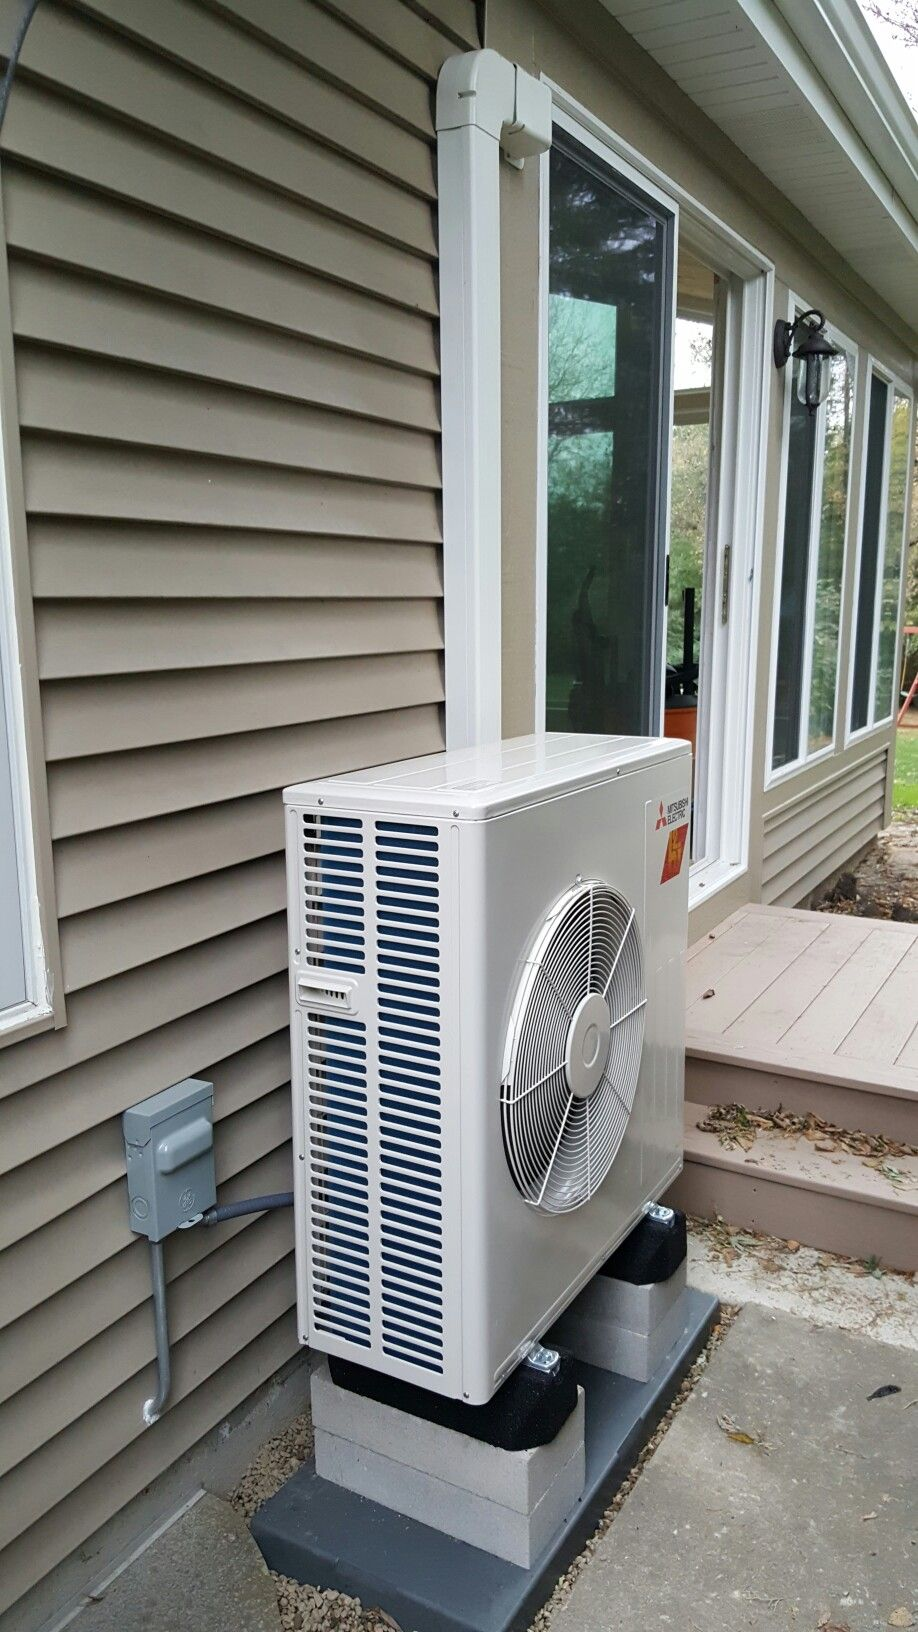 medium resolution of fh18 mitsubishi ductless heating and cooling system installed in a sunroom by a compass heating and air conditioning inc www compassheatingandair com